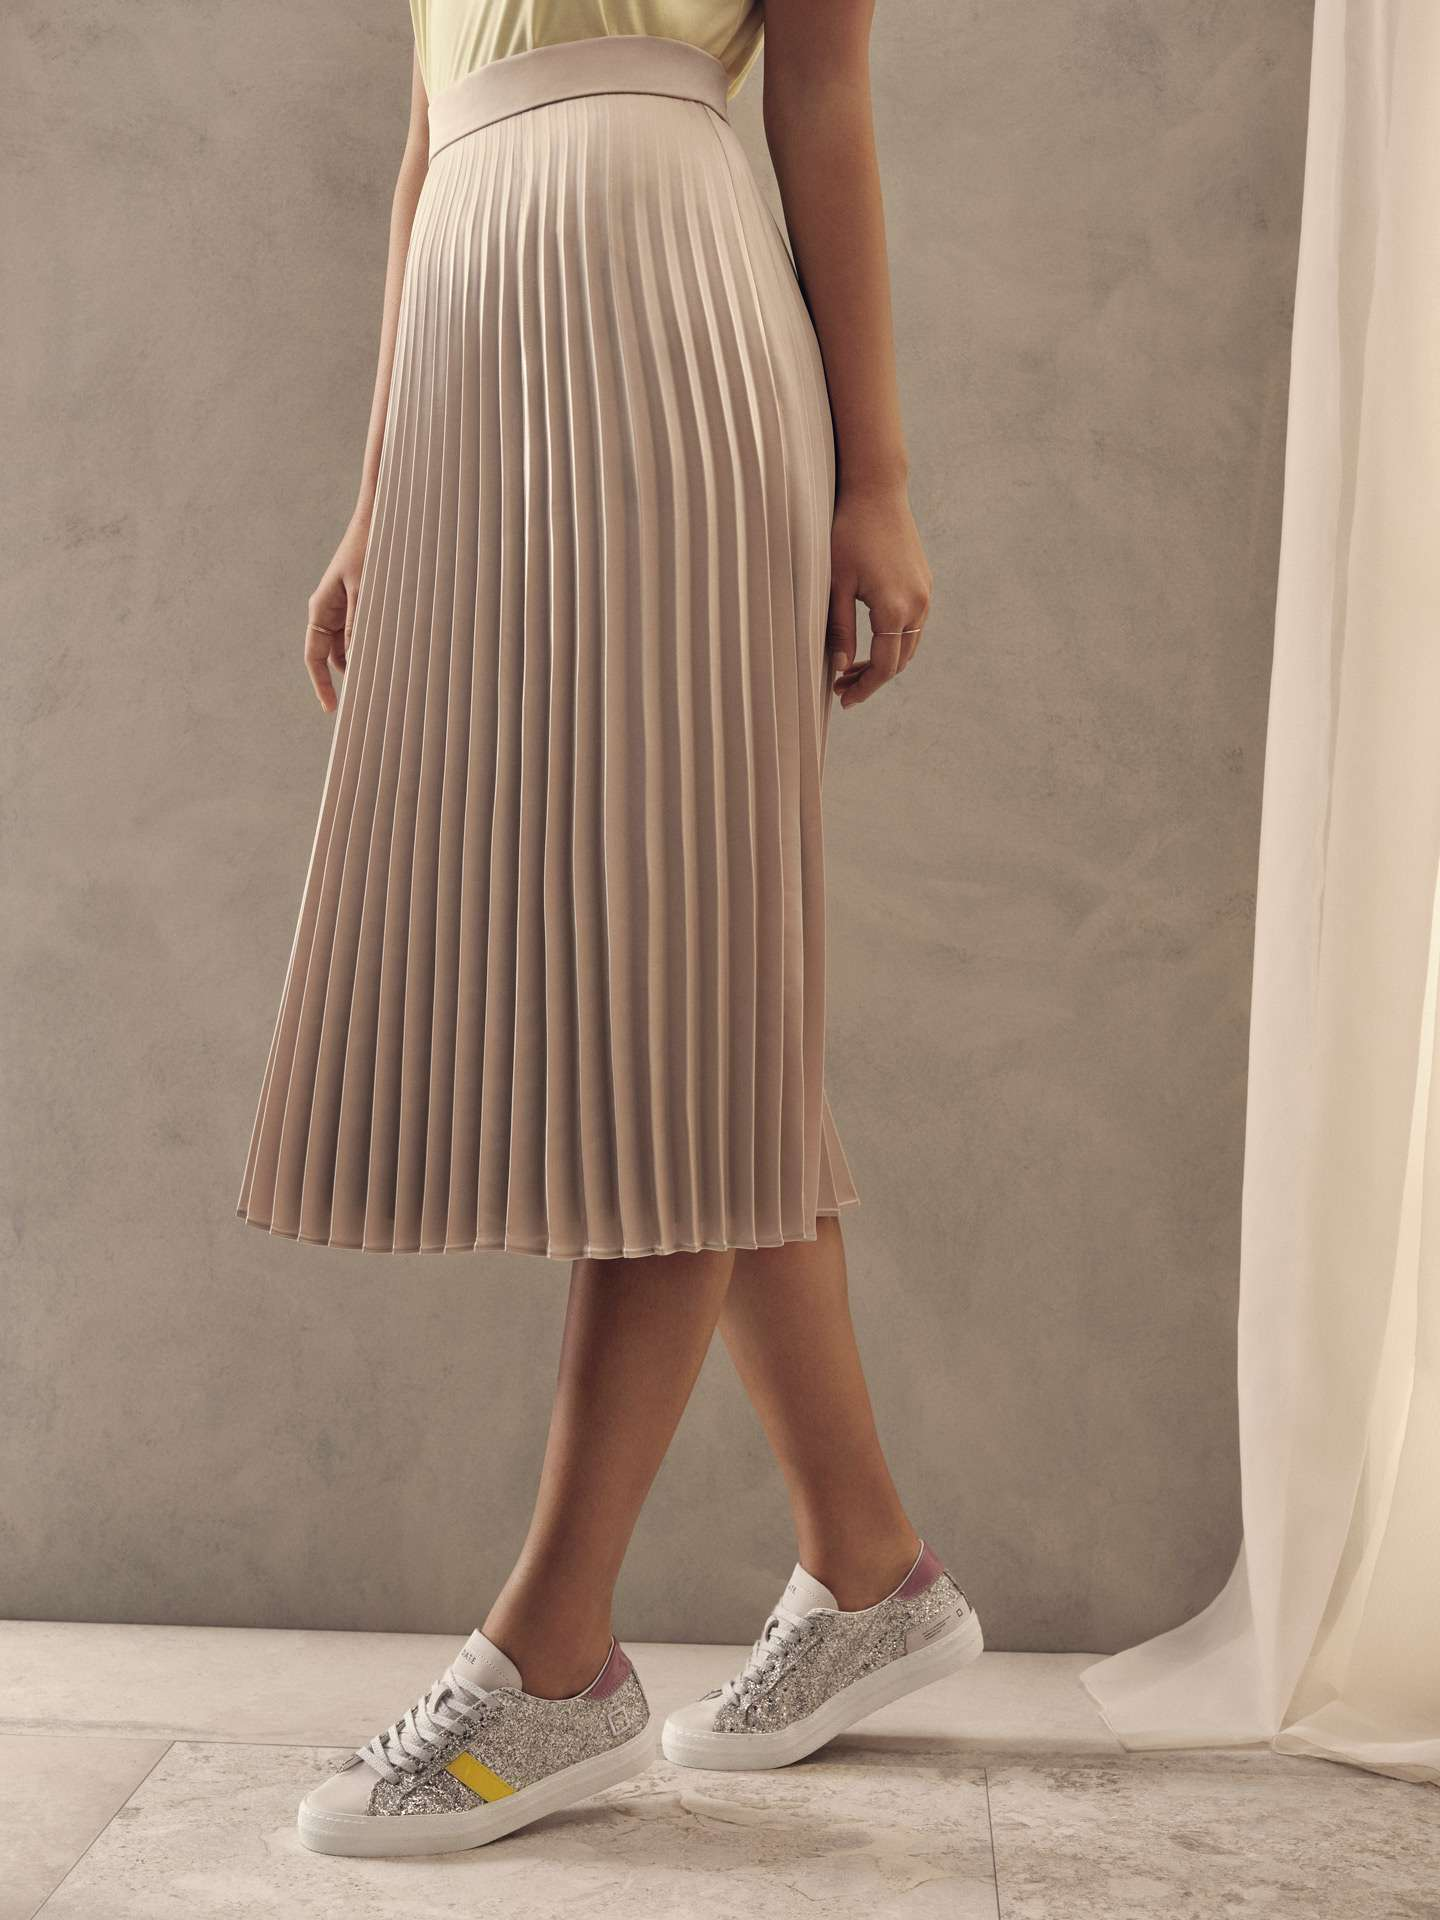 model of colour wearing pleated midi skirt with silver glitter sneakers for Jean-Paul Fortin summer-spring collection photographed by Maxyme G Delisle with artistic direction, conception and set design by Studio TB